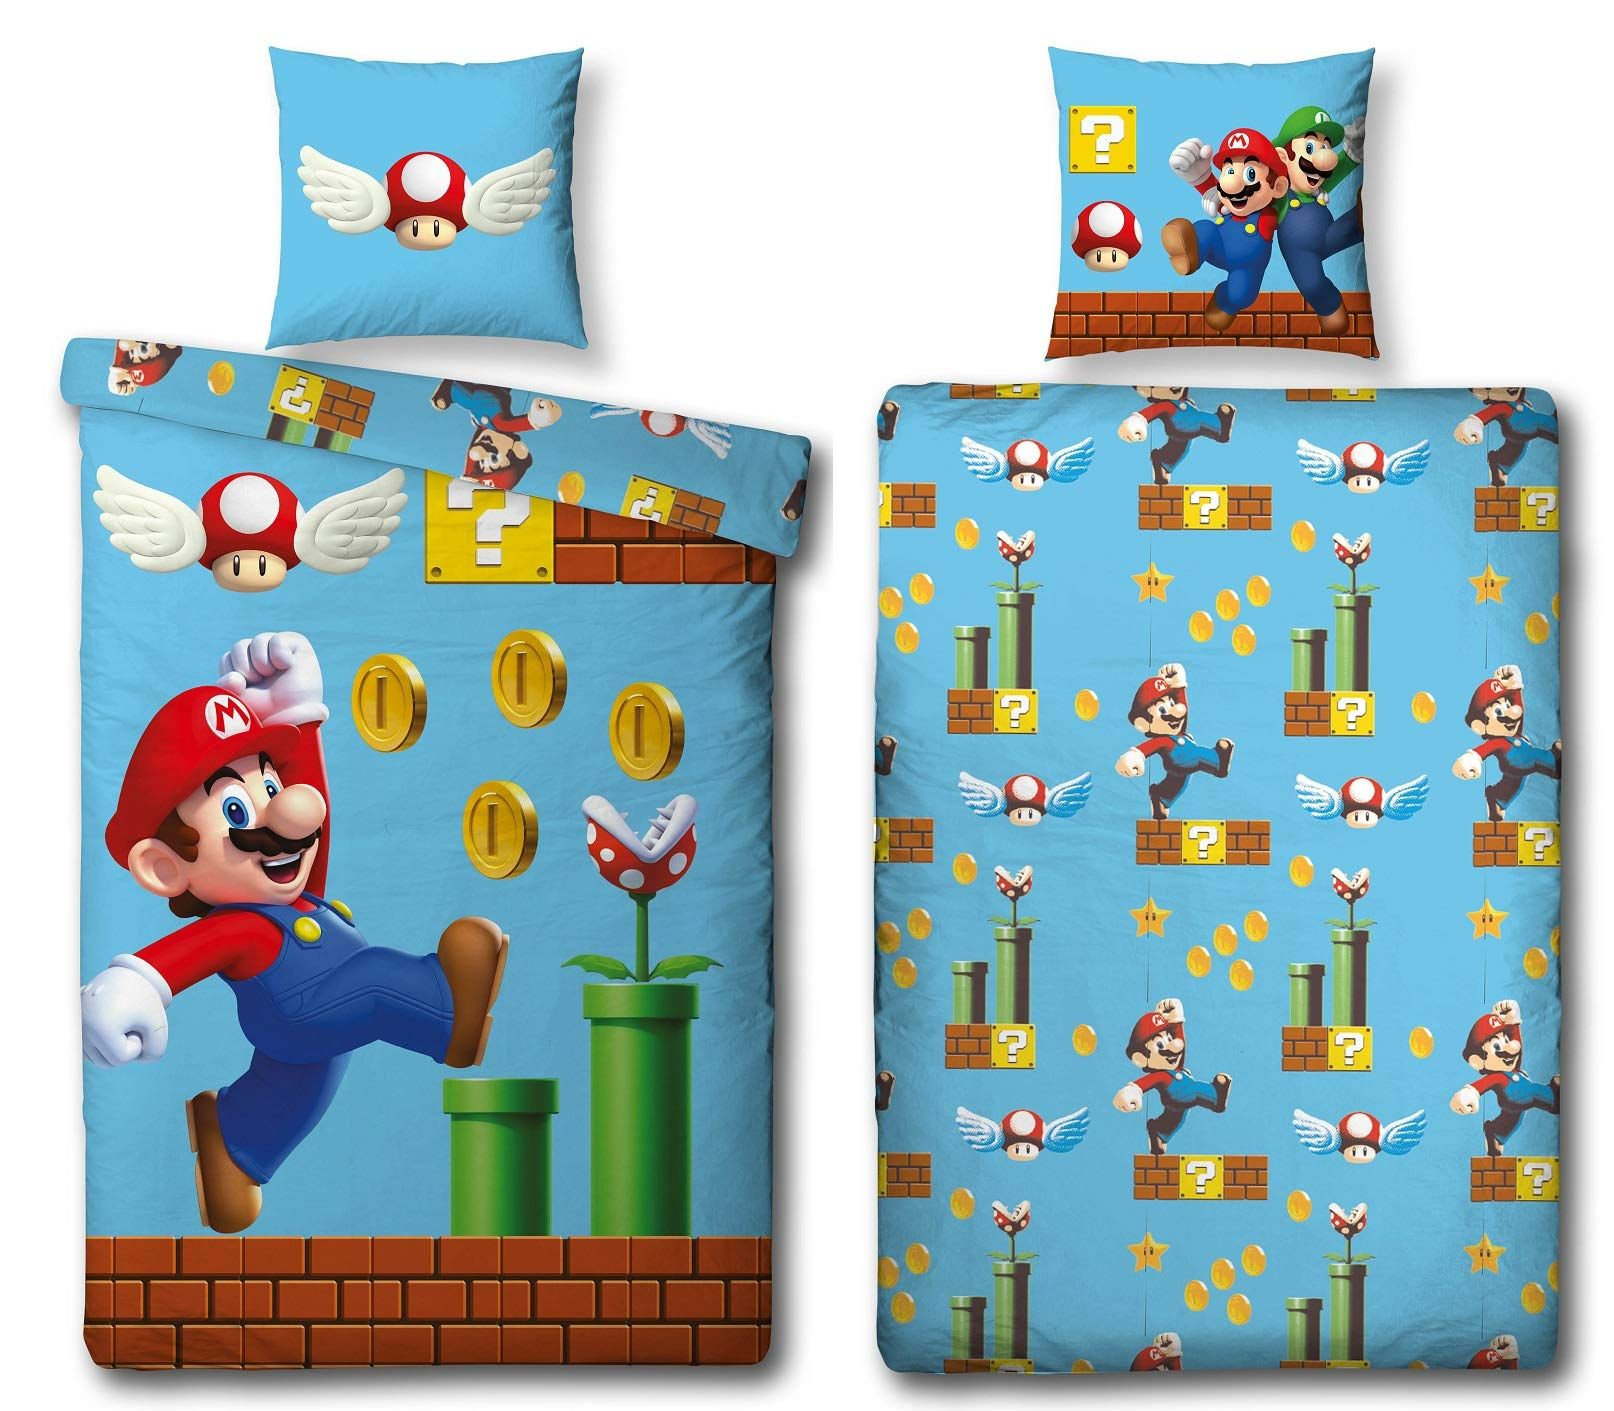 Bettwäsche Transformers Character World Wende Bettwäsche-set Super Mario, 135x200 Cm 80x80 Cm, 100% Baumwolle, Games, 100% Baumwolle, Linon: … | Bettwäsche Set, Bettwäsche, Kopfkissenbezug